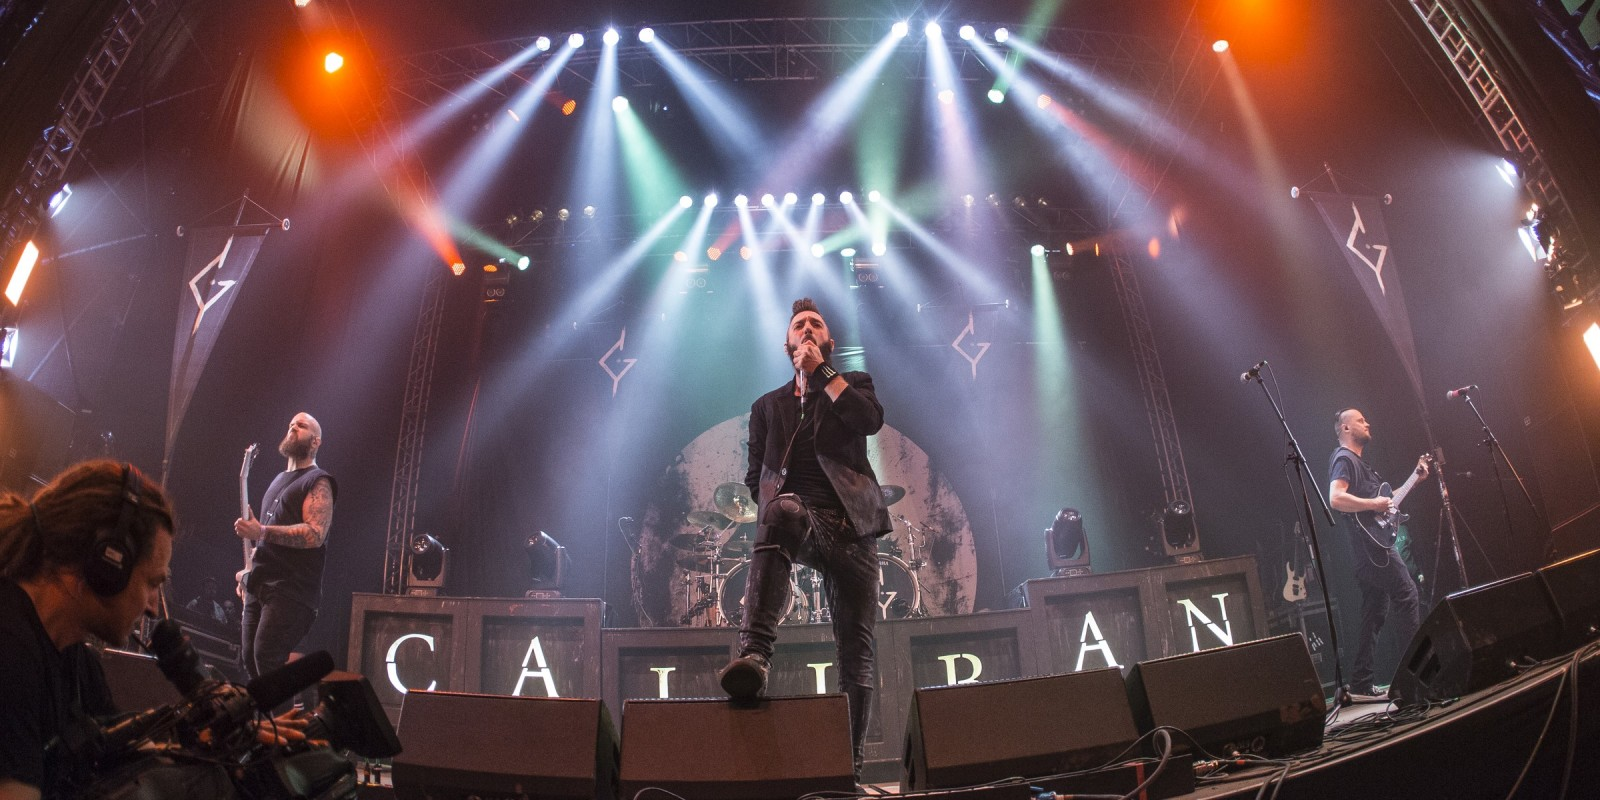 Caliban at Wacken Festival.